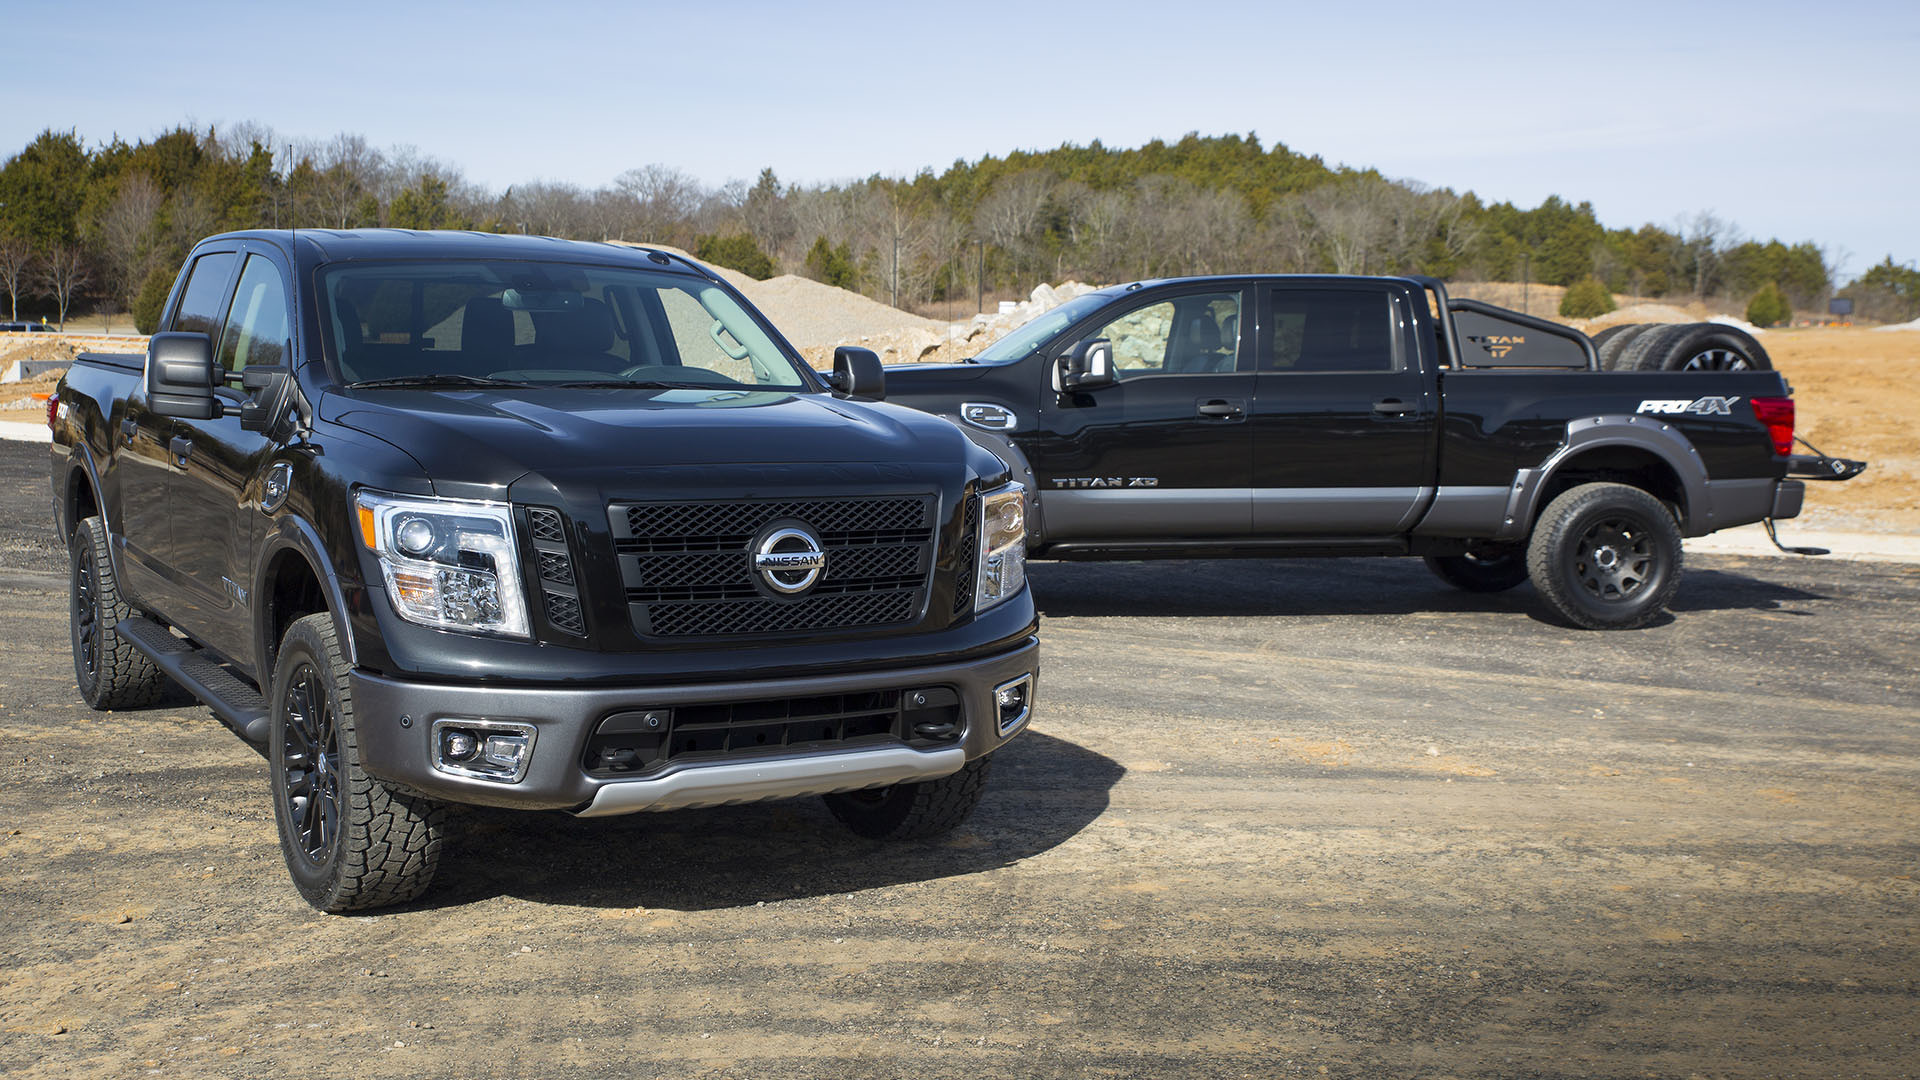 2017 nissan titan titan xd concepts show range of dealer accessories. Black Bedroom Furniture Sets. Home Design Ideas